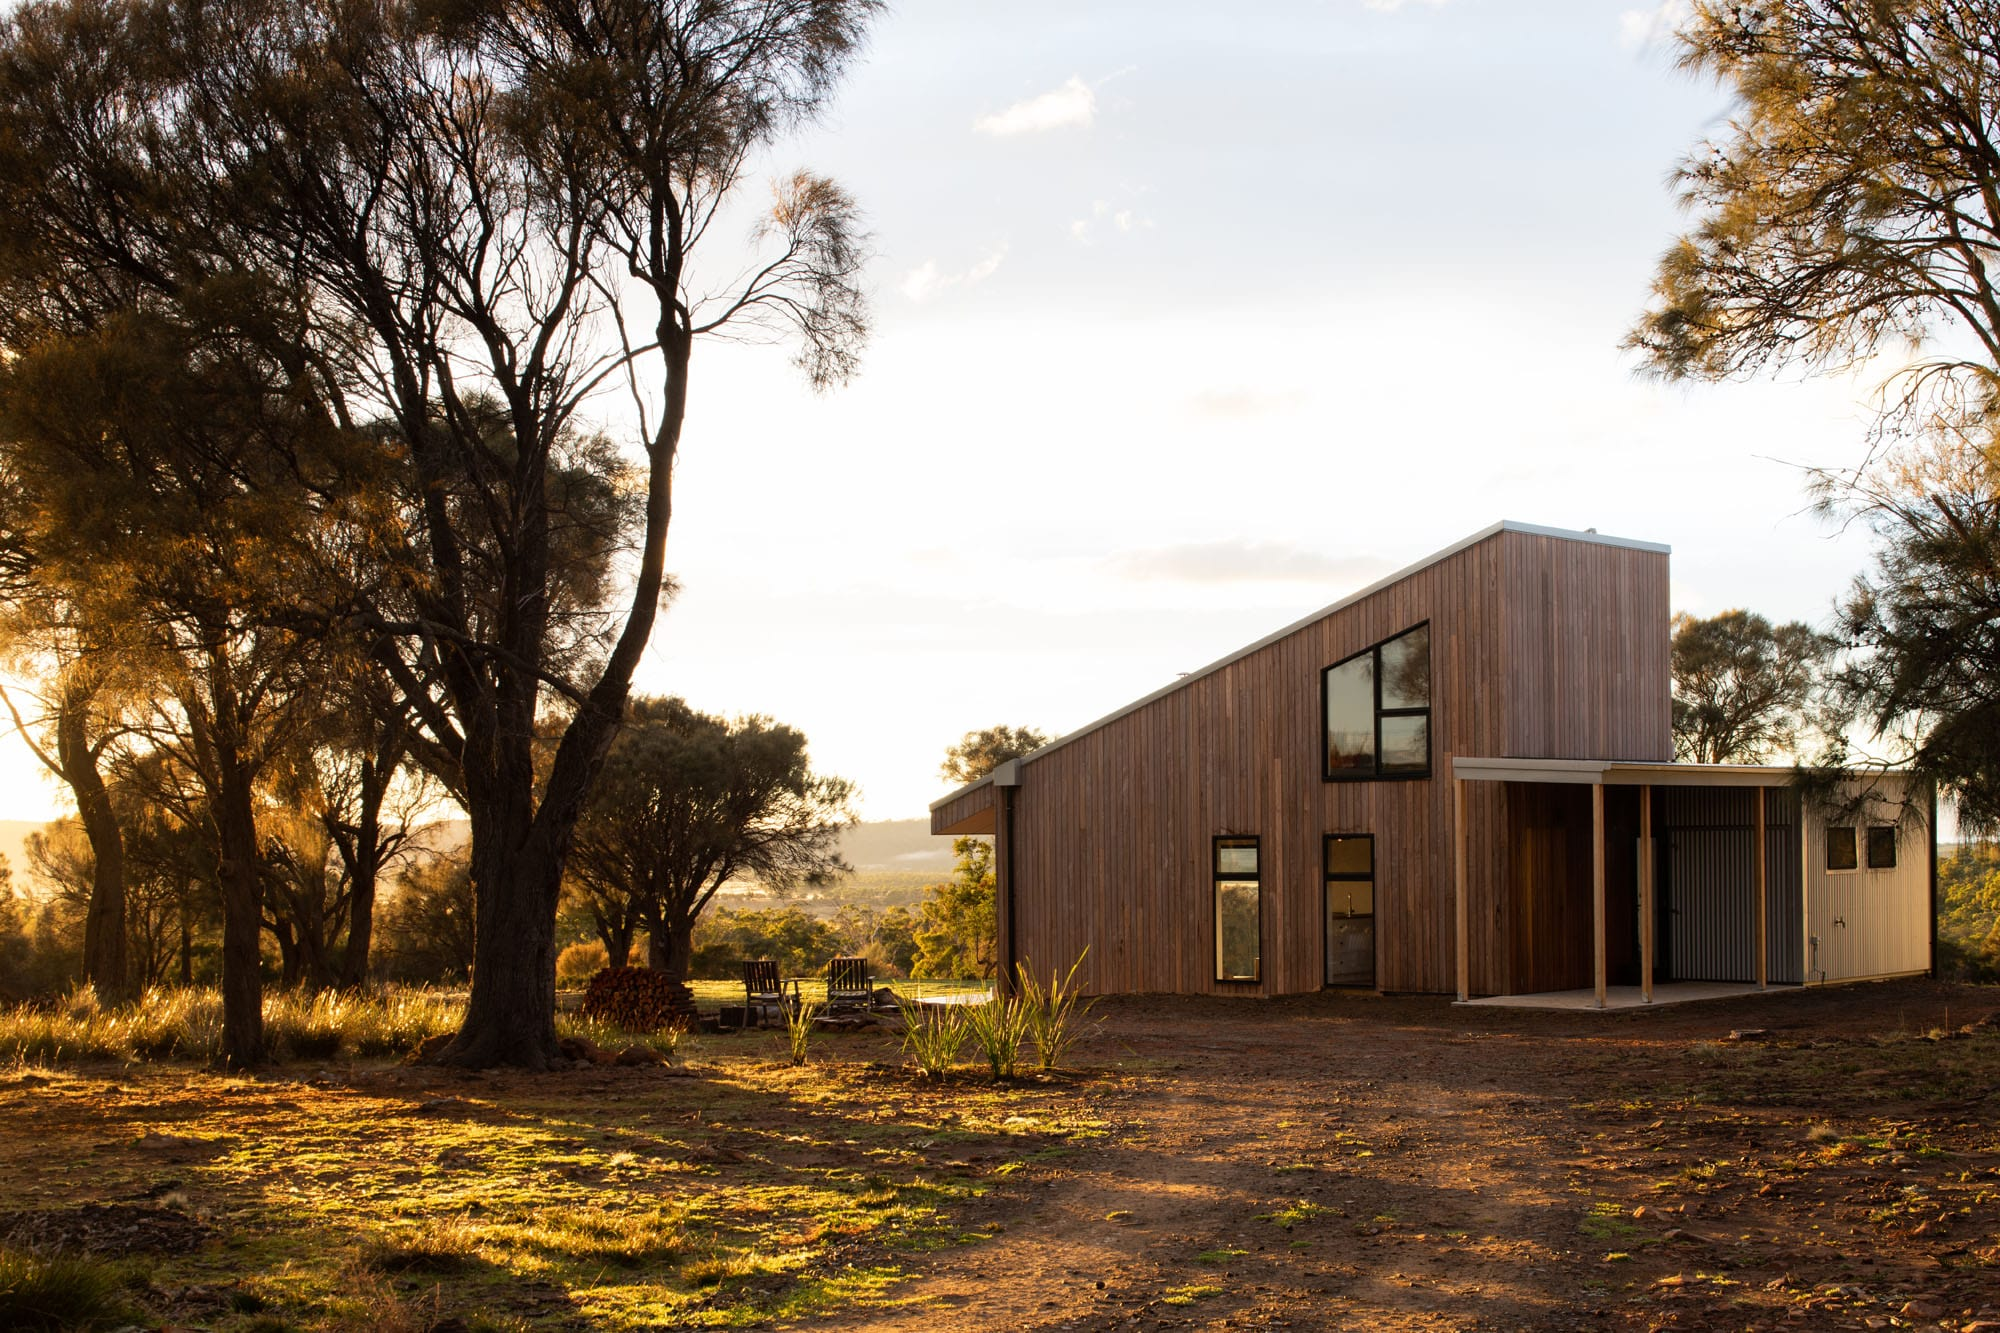 Rear view of timber clad off-grid home